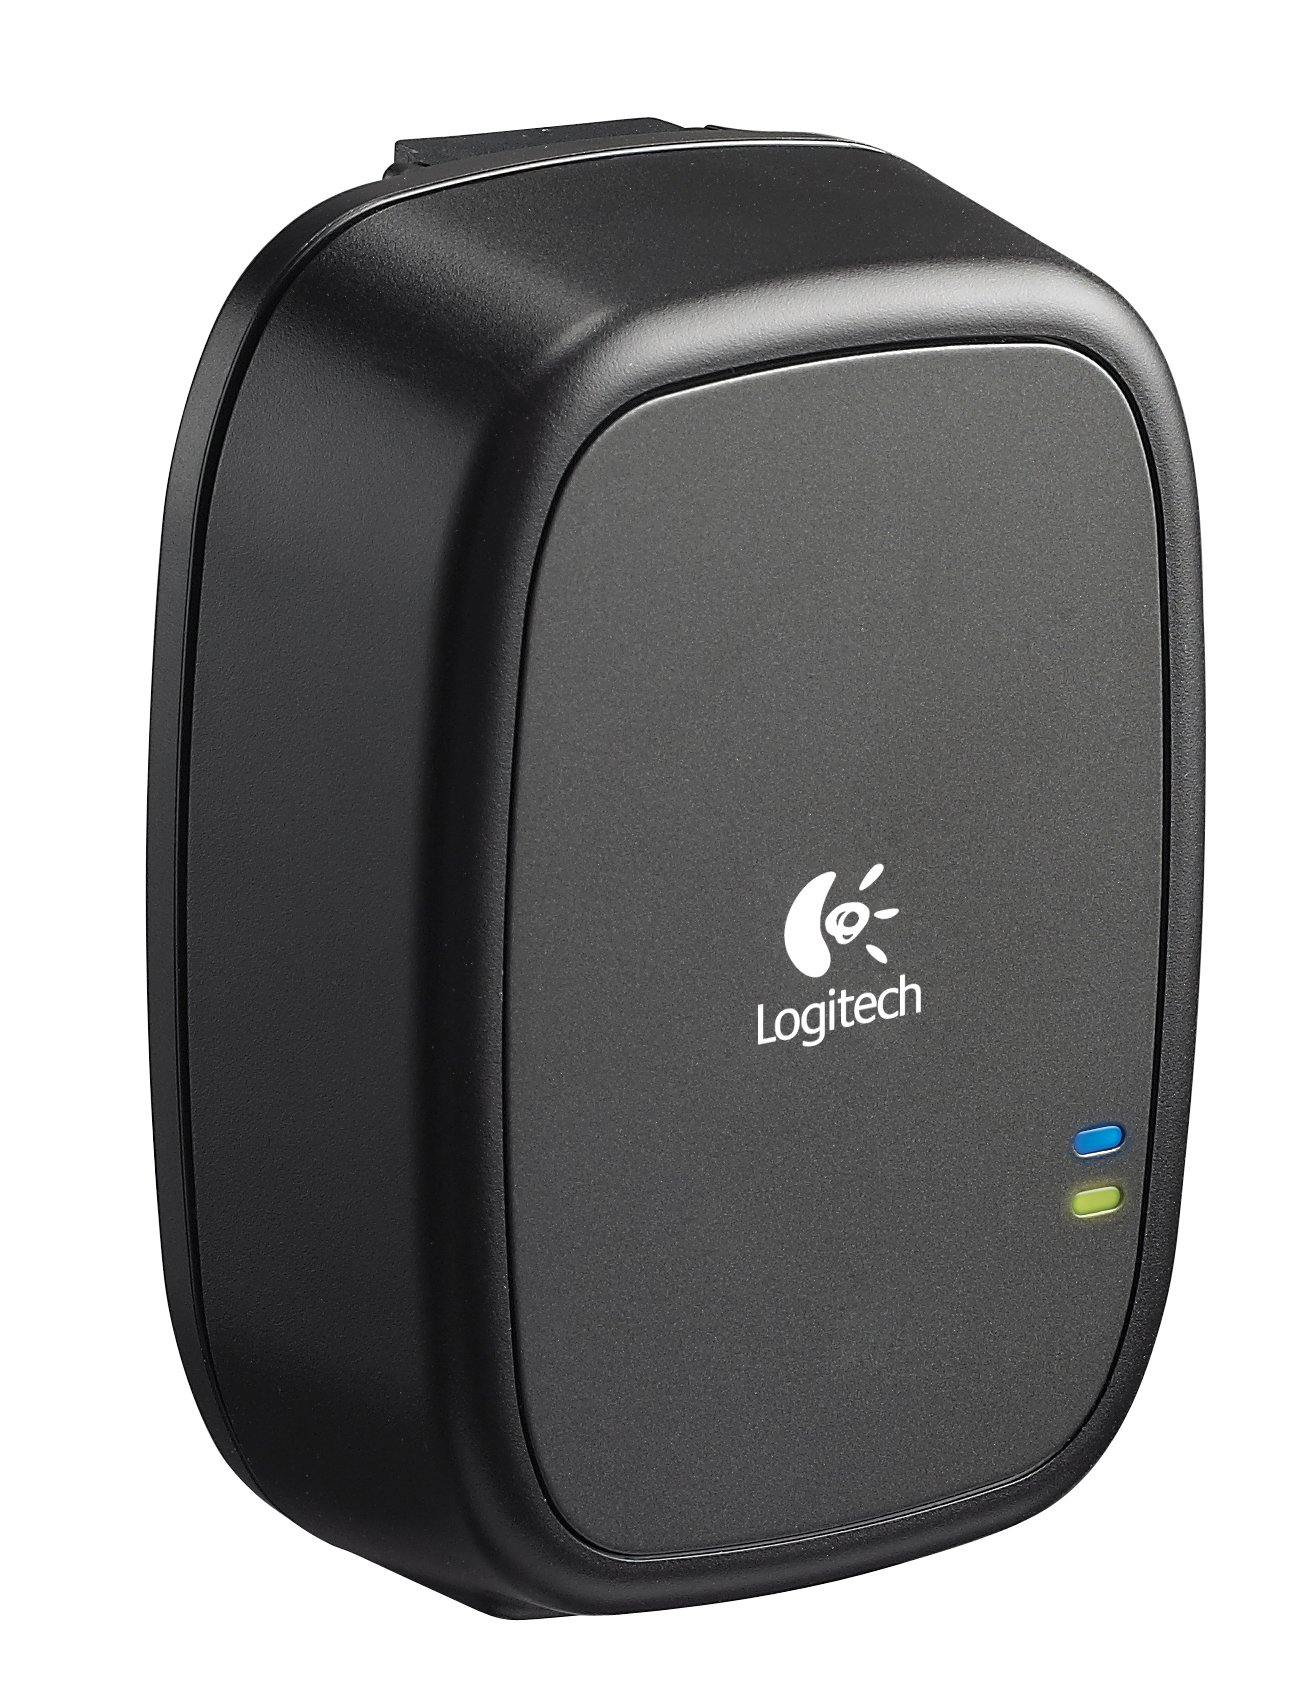 Logitech HD Powerline 200 Adapter - Connect Devices to Internet Using Existing Power Outlets by Logitech (Image #3)